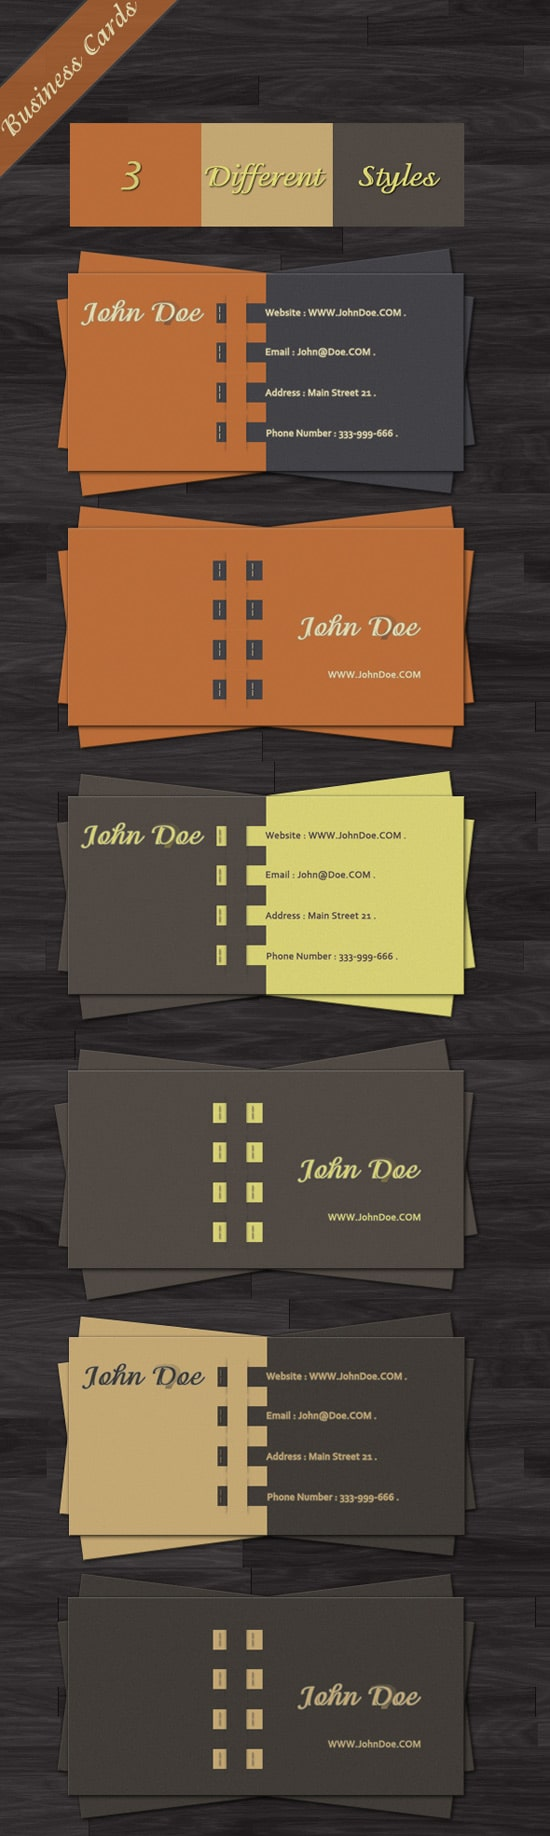 100 free business card templates designrfix business is business free psd vector business card accmission Image collections